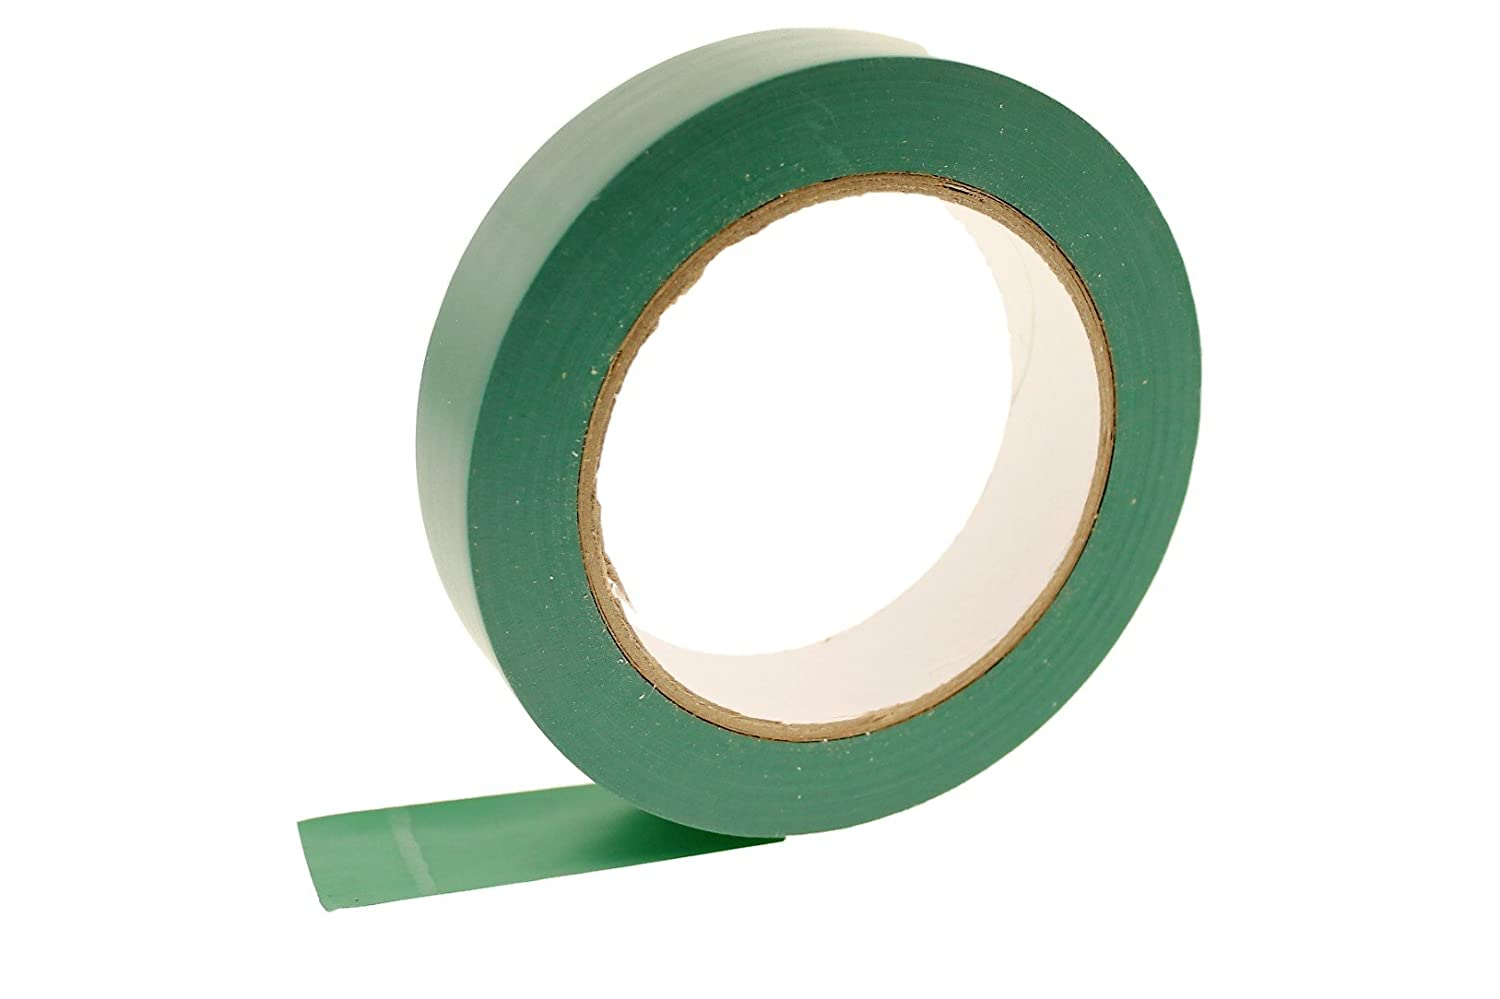 1 Dark Green 7 Mil Rubber Adhesive PVC Vinyl Tape OSHA Caution Marking Safety Electrical Removable Floor Tape 36 yd